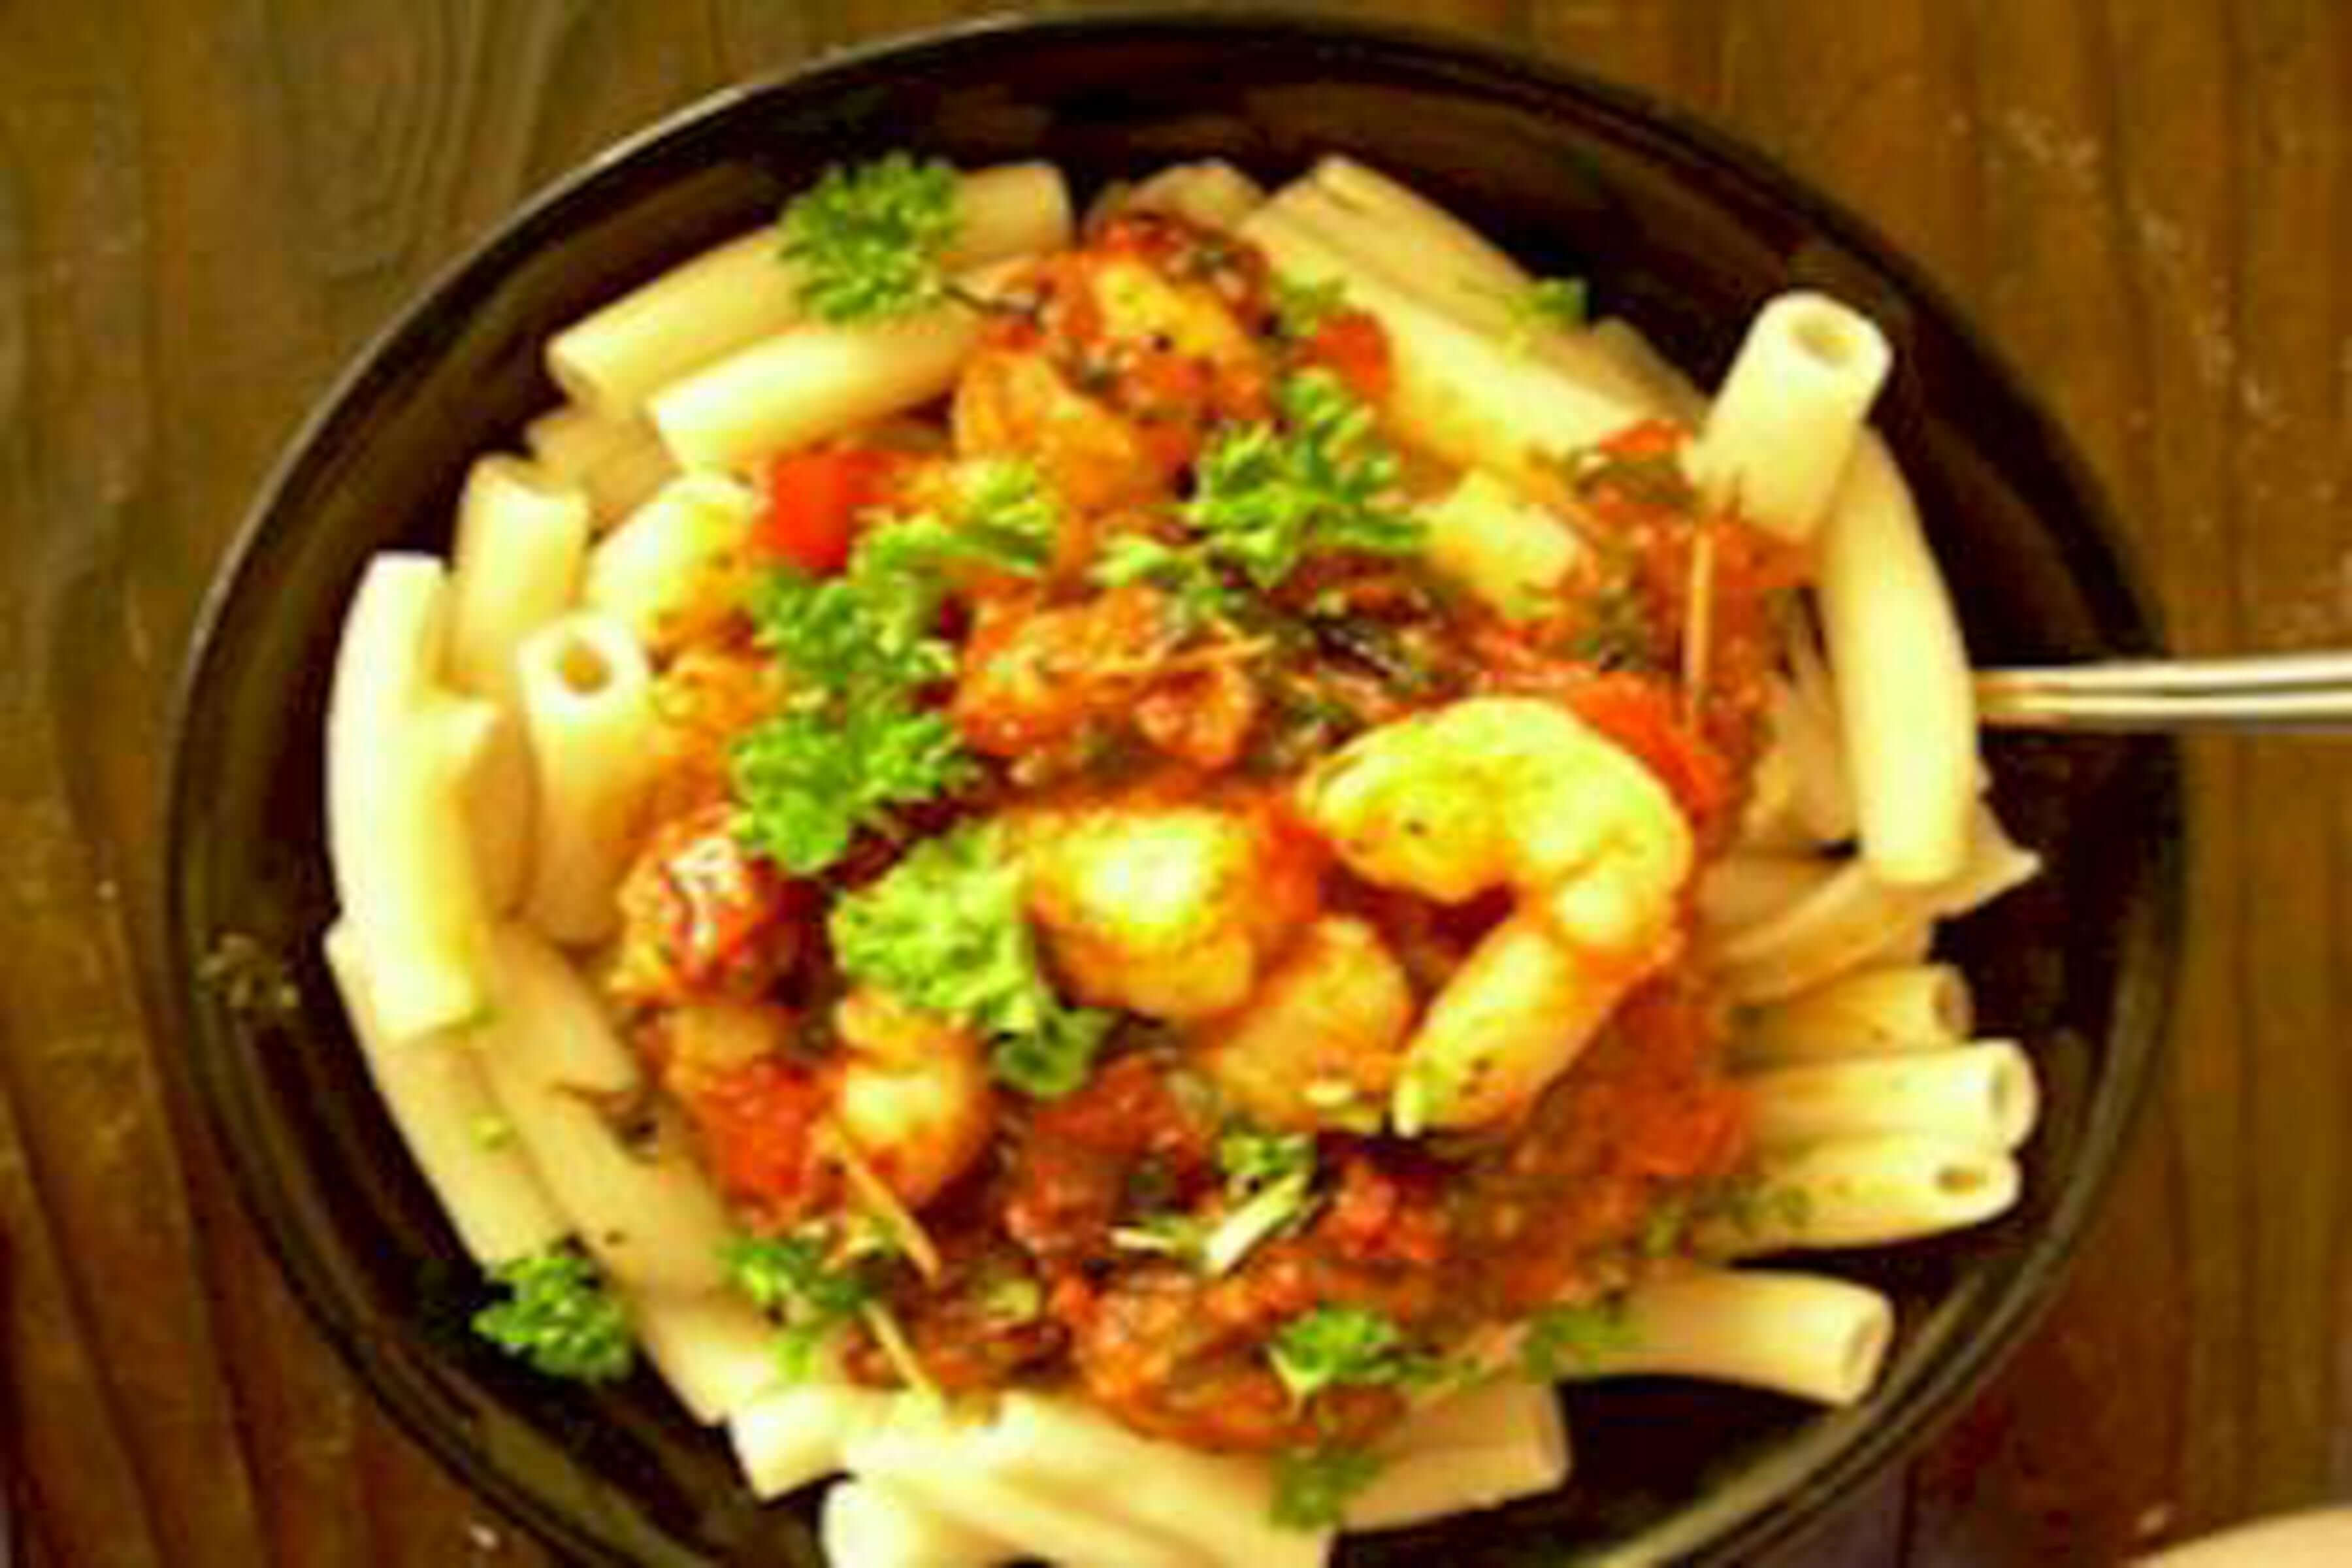 Spicy Penne Pasta And Shrimp With Tomato Sauce Recipe